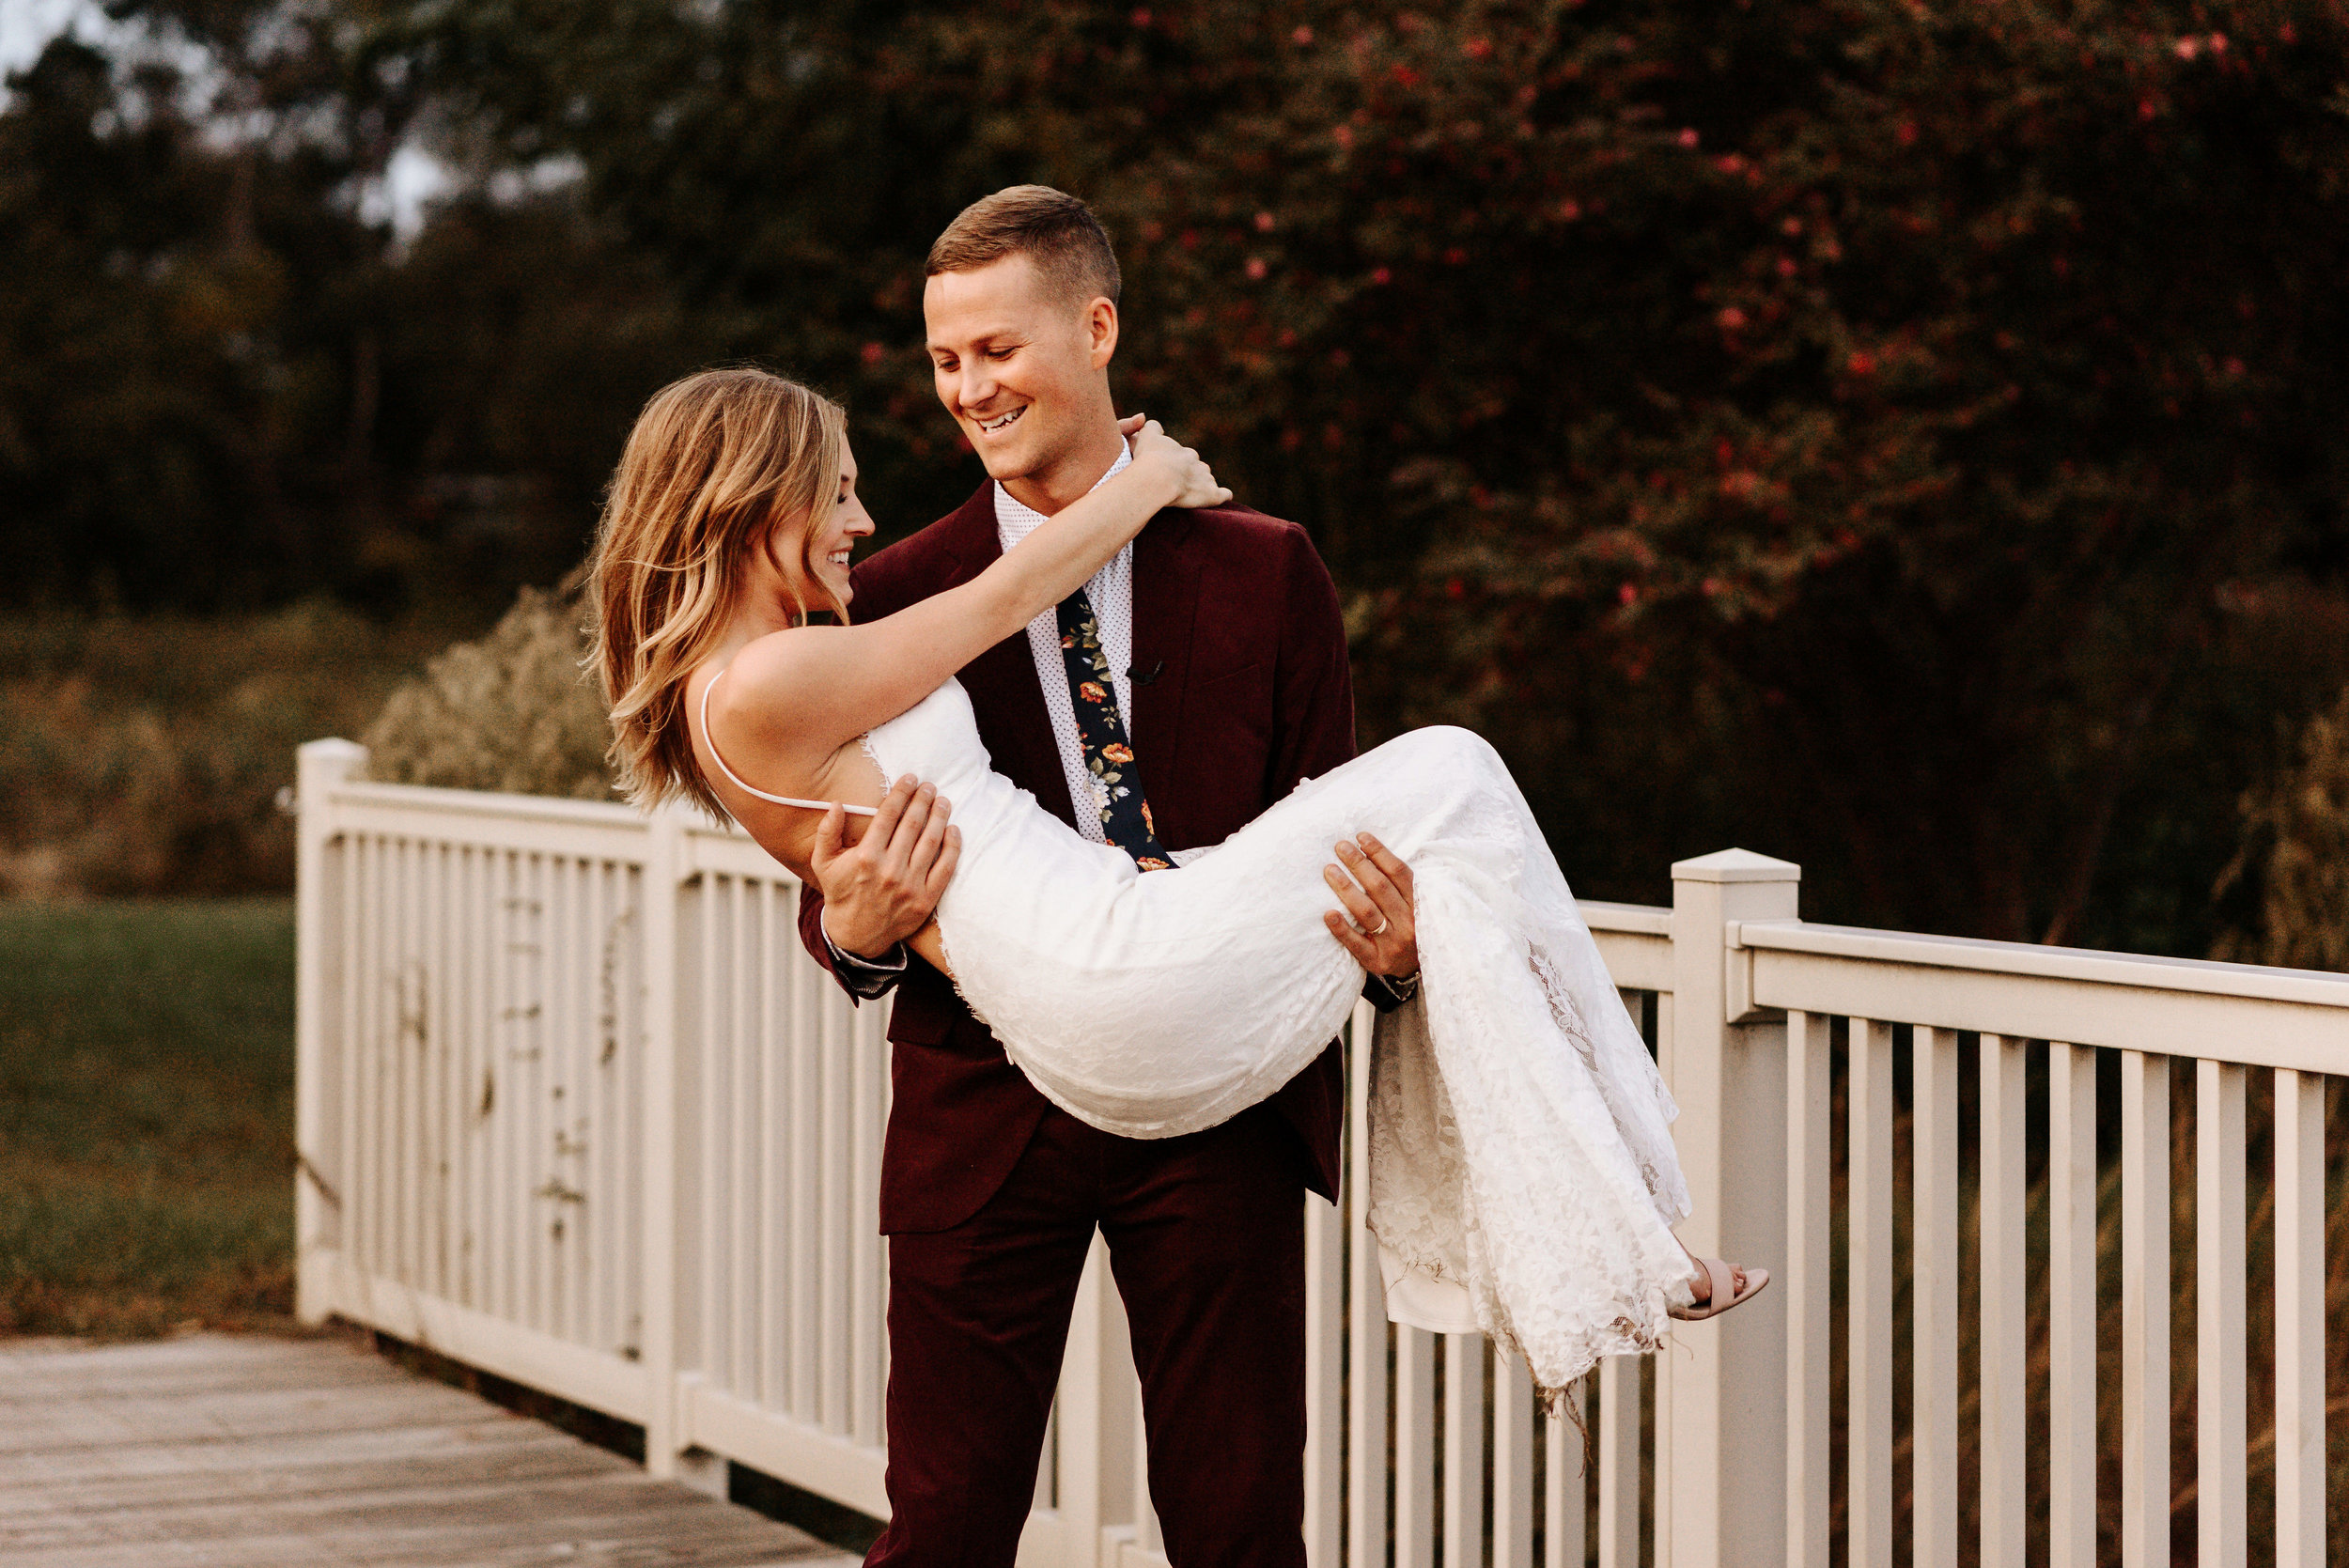 Kourtney_Sean_Savannah_Georgia_Wedding_Wormsloe_Histroic_Site_Coastal_Georgia_Botanical_Gardens_Photography_by_V_7280.jpg